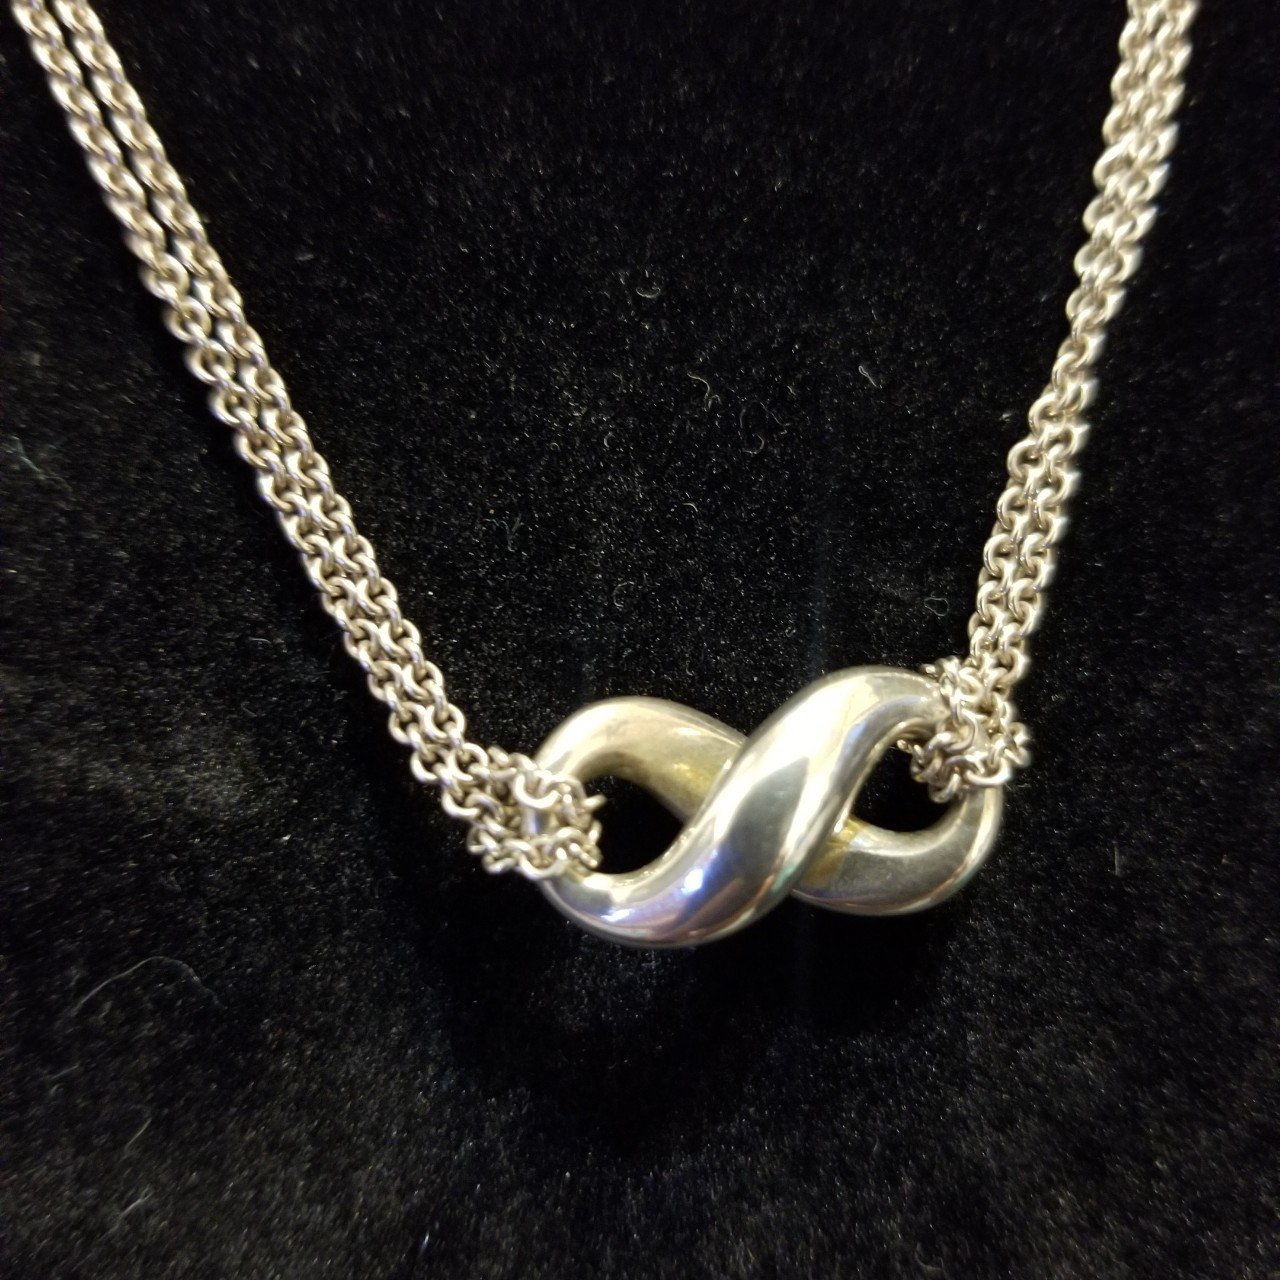 46a847092 Tiffany & Co 925 Silver Double Strand Infinity Necklace! is - Depop